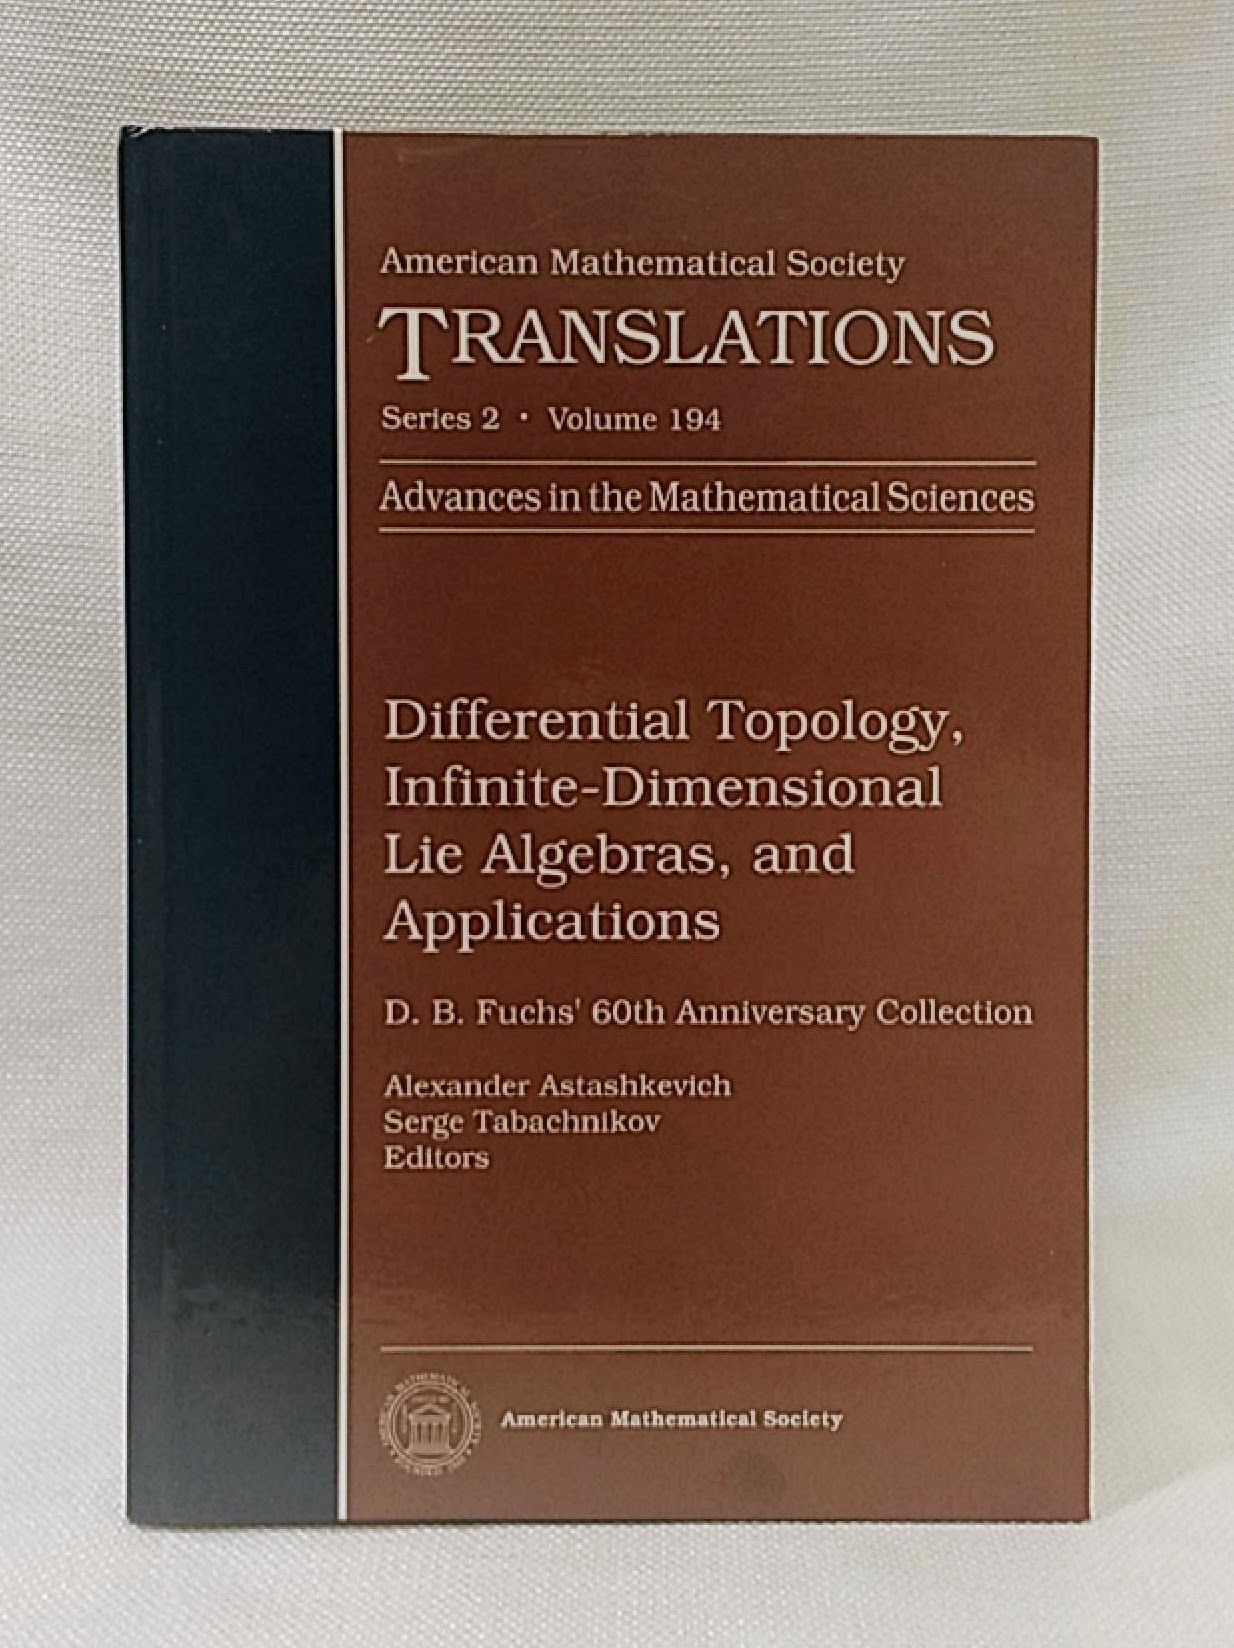 Differential Topology, Infinite-Dimensional Lie Algebras, and Applications: D.B. Fuchs' 60th Anniversary Collection (American Mathematical Society Translations Series 2), Astashkevich, Alexander [Editor]; Tabachnikov, Serge [Editor];